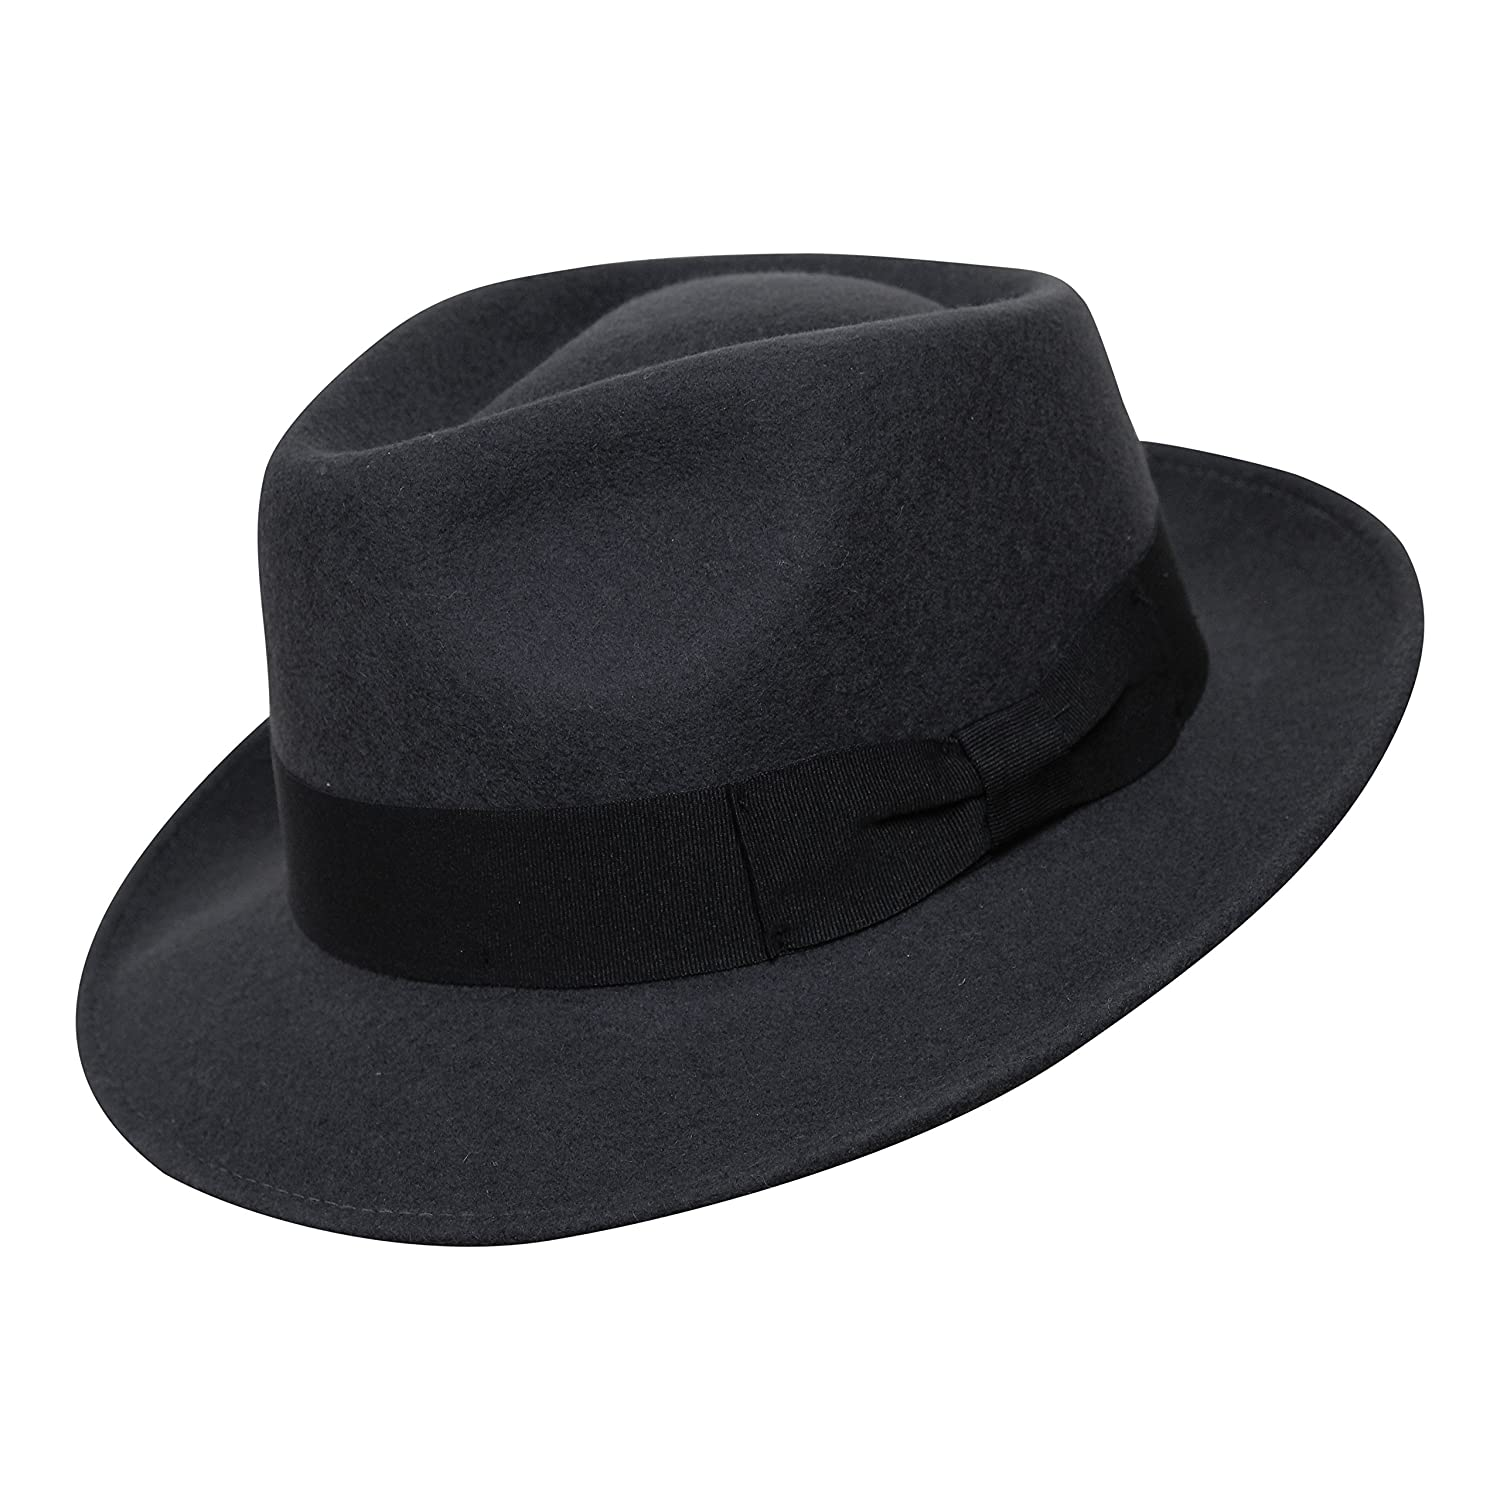 Retro Clothing for Men | Vintage Men's Fashion Borges & Scott B&S Premium Doyle - Teardrop Fedora Hat - 100% Wool Felt - Crushable for Travel - Water Resistant - Unisex £34.95 AT vintagedancer.com